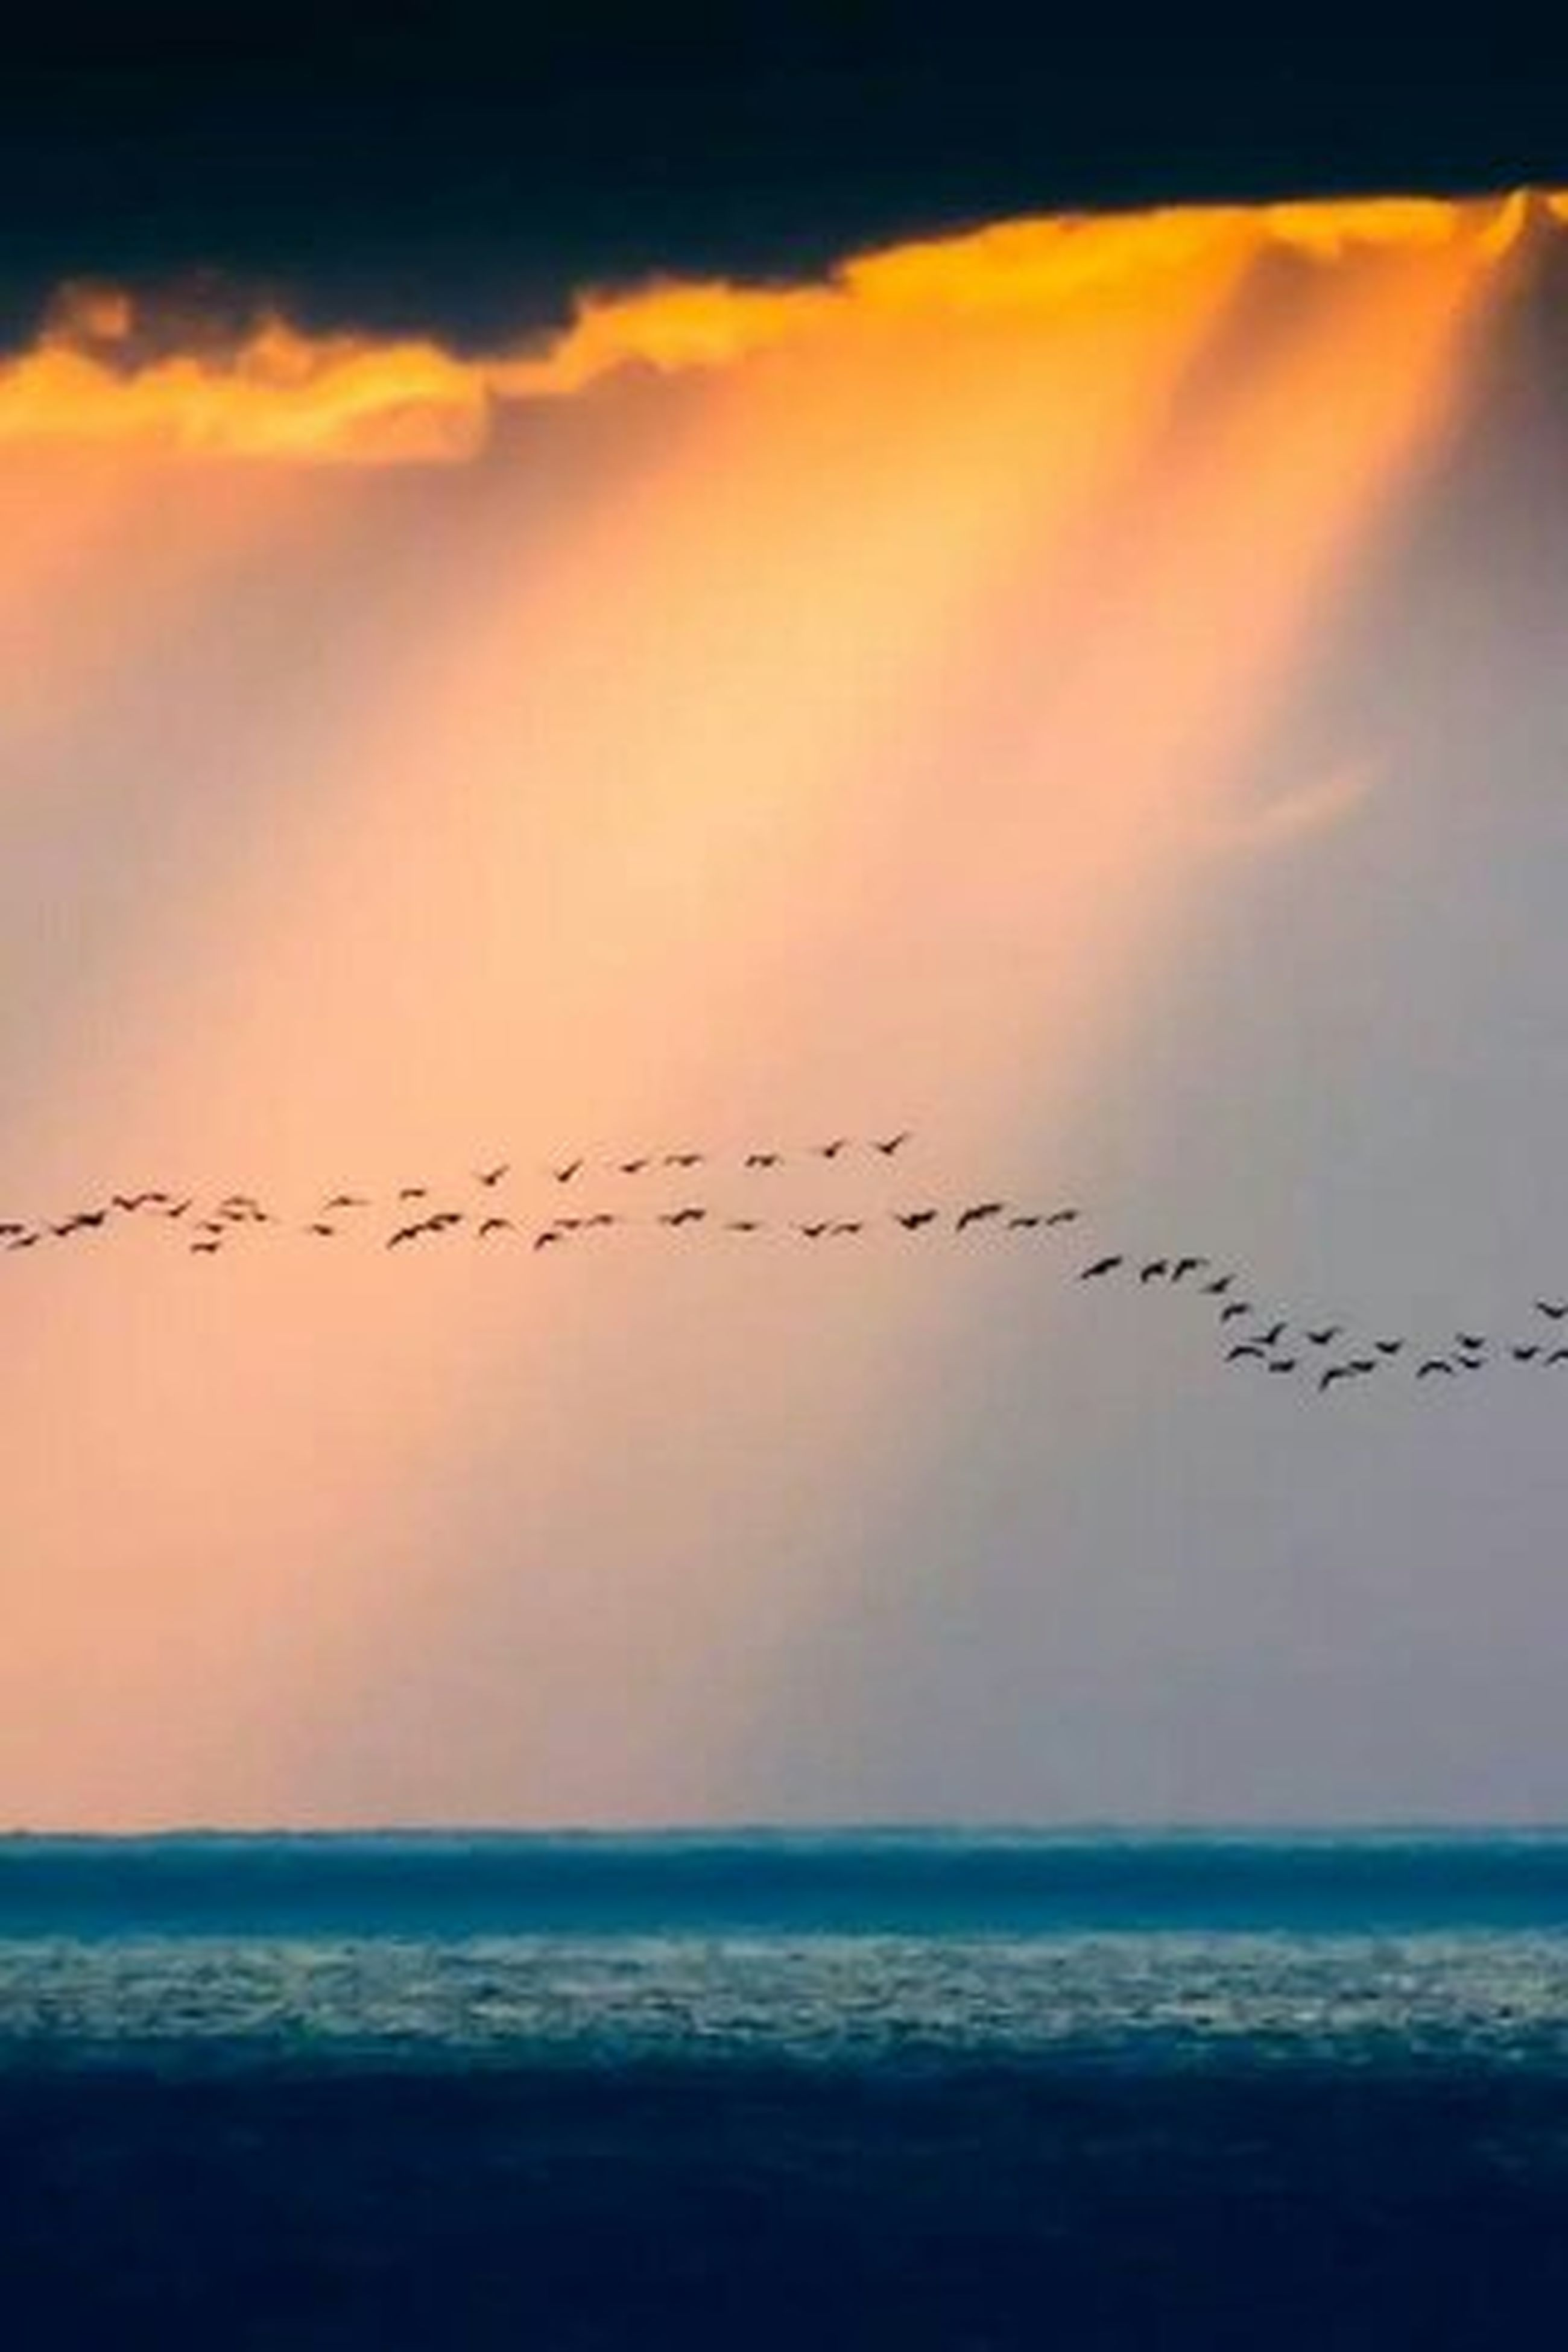 sea, horizon over water, sunset, water, bird, sky, scenics, beauty in nature, tranquil scene, nature, tranquility, animal themes, animals in the wild, wildlife, beach, silhouette, idyllic, outdoors, flying, orange color